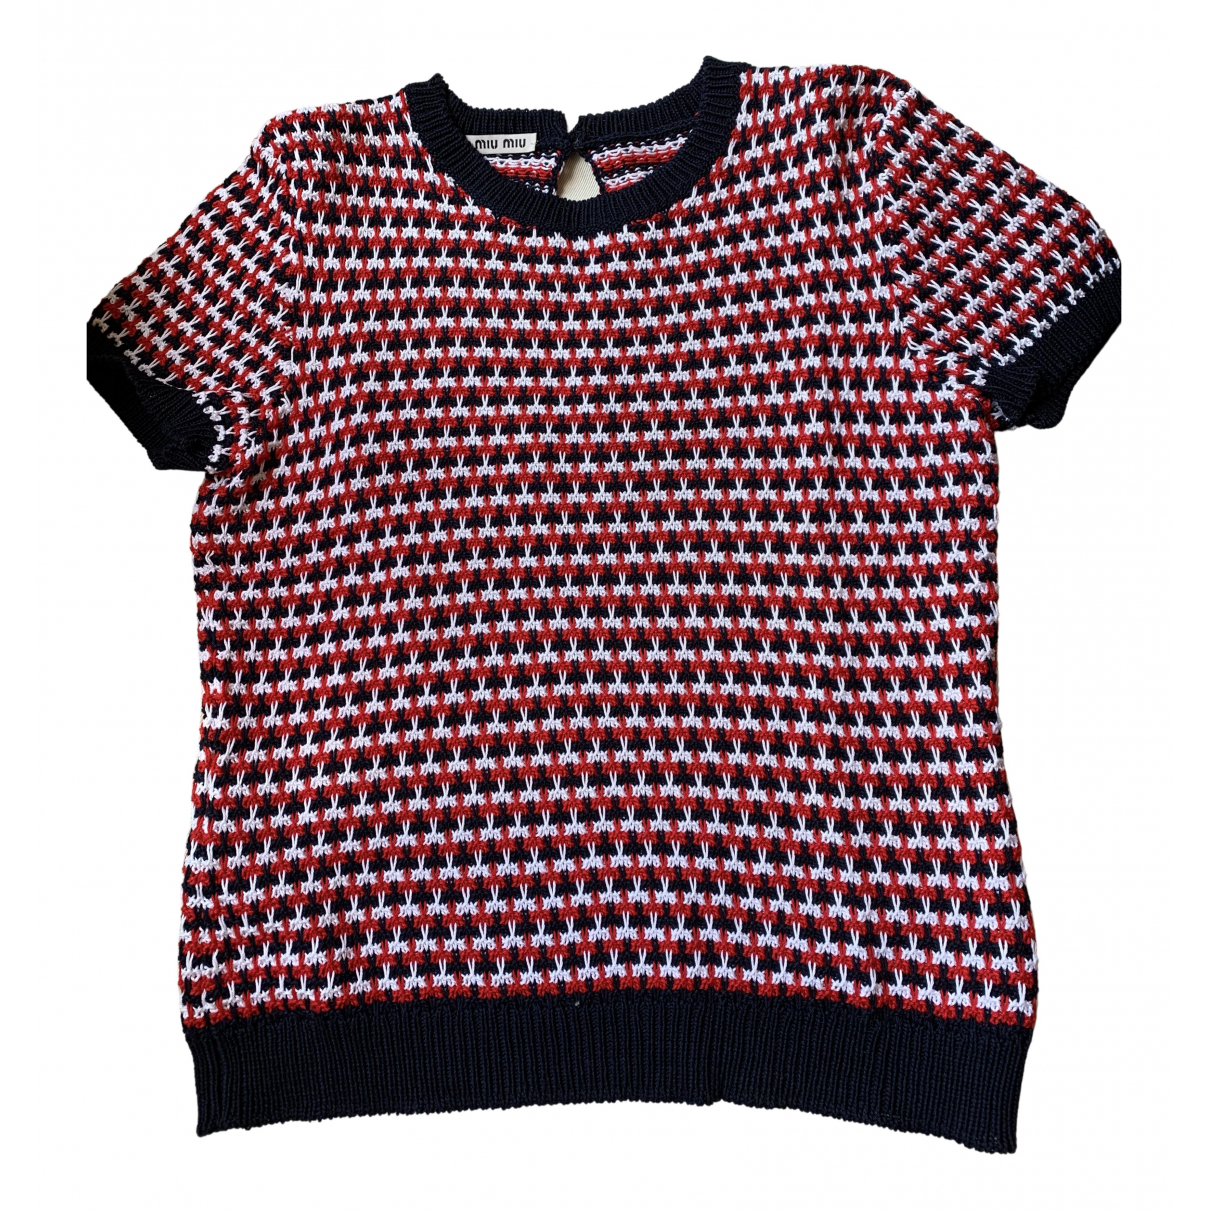 Miu Miu N Multicolour Cotton Knitwear for Women 40 IT